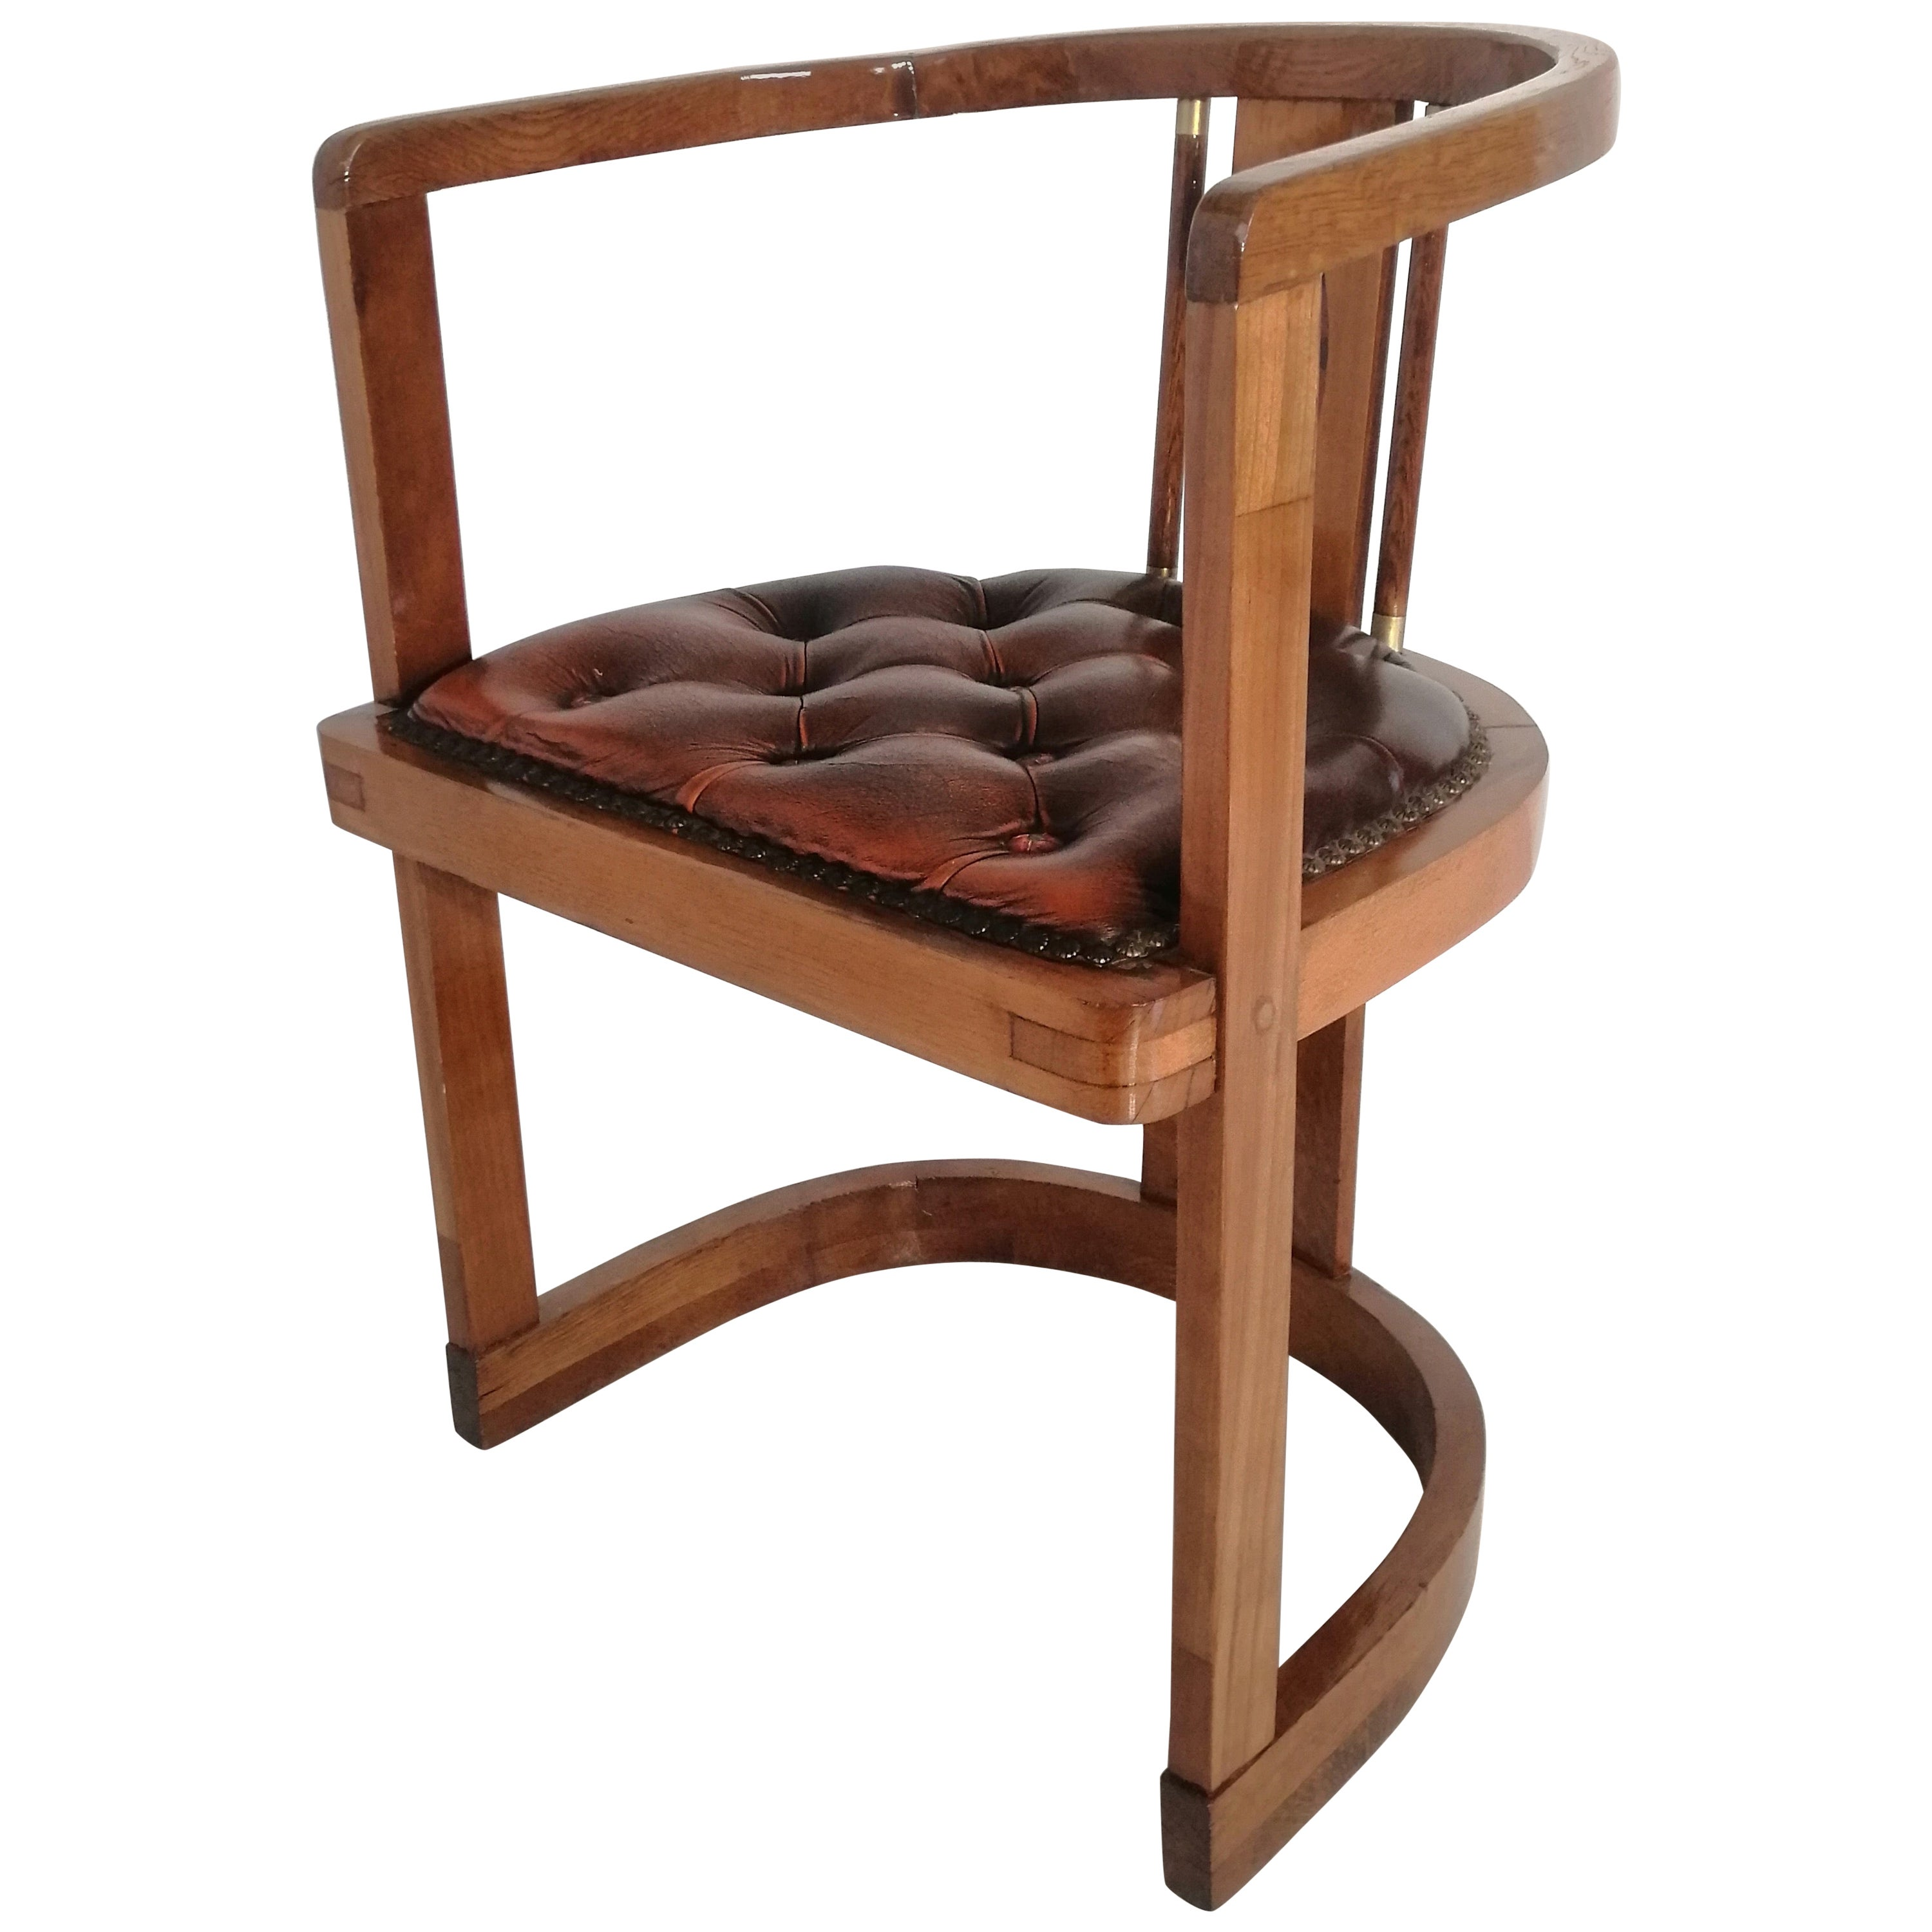 Secession Armchair from 1900